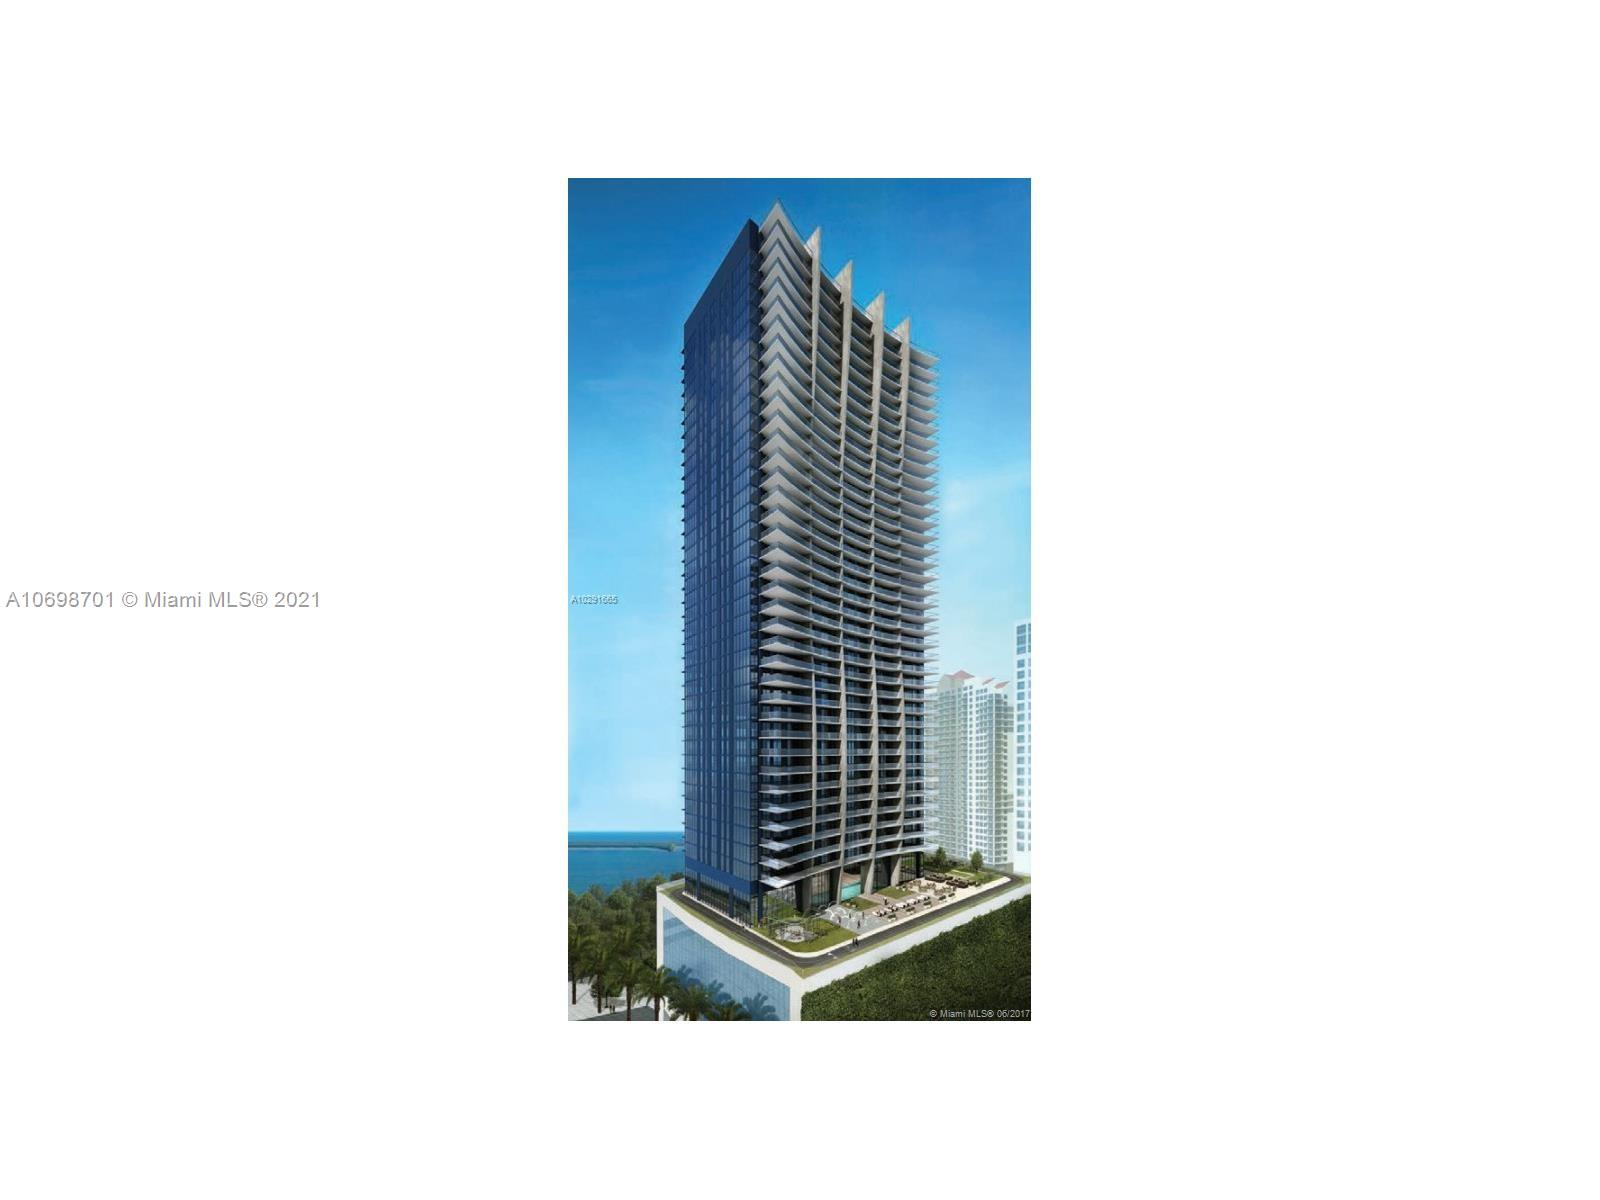 1010 Brickell condos is a 50-story, luxury high-rise located in Miami at 1010 Brickell Avenue. Completed in 2017, 1010 Brickell was developed by Key International Development and designed by internationally-acclaimed architecture firm Sieger-Suarez. 1010 Brickell is well-known for its fabulous amenities. Its amenities include a rooftop lounge, a pool perfectly positioned to watch the sunrise and sunset, an outdoor theater, and fire pit. The club level at 1010 Brickell features a bocce ball court, squash court, full-service spa with co-ed hammam, indoor and outdoor play areas for the kids, virtual golf simulator, social room, and much more. No matter your age, you'll find plenty to do at 1010 Brickell.